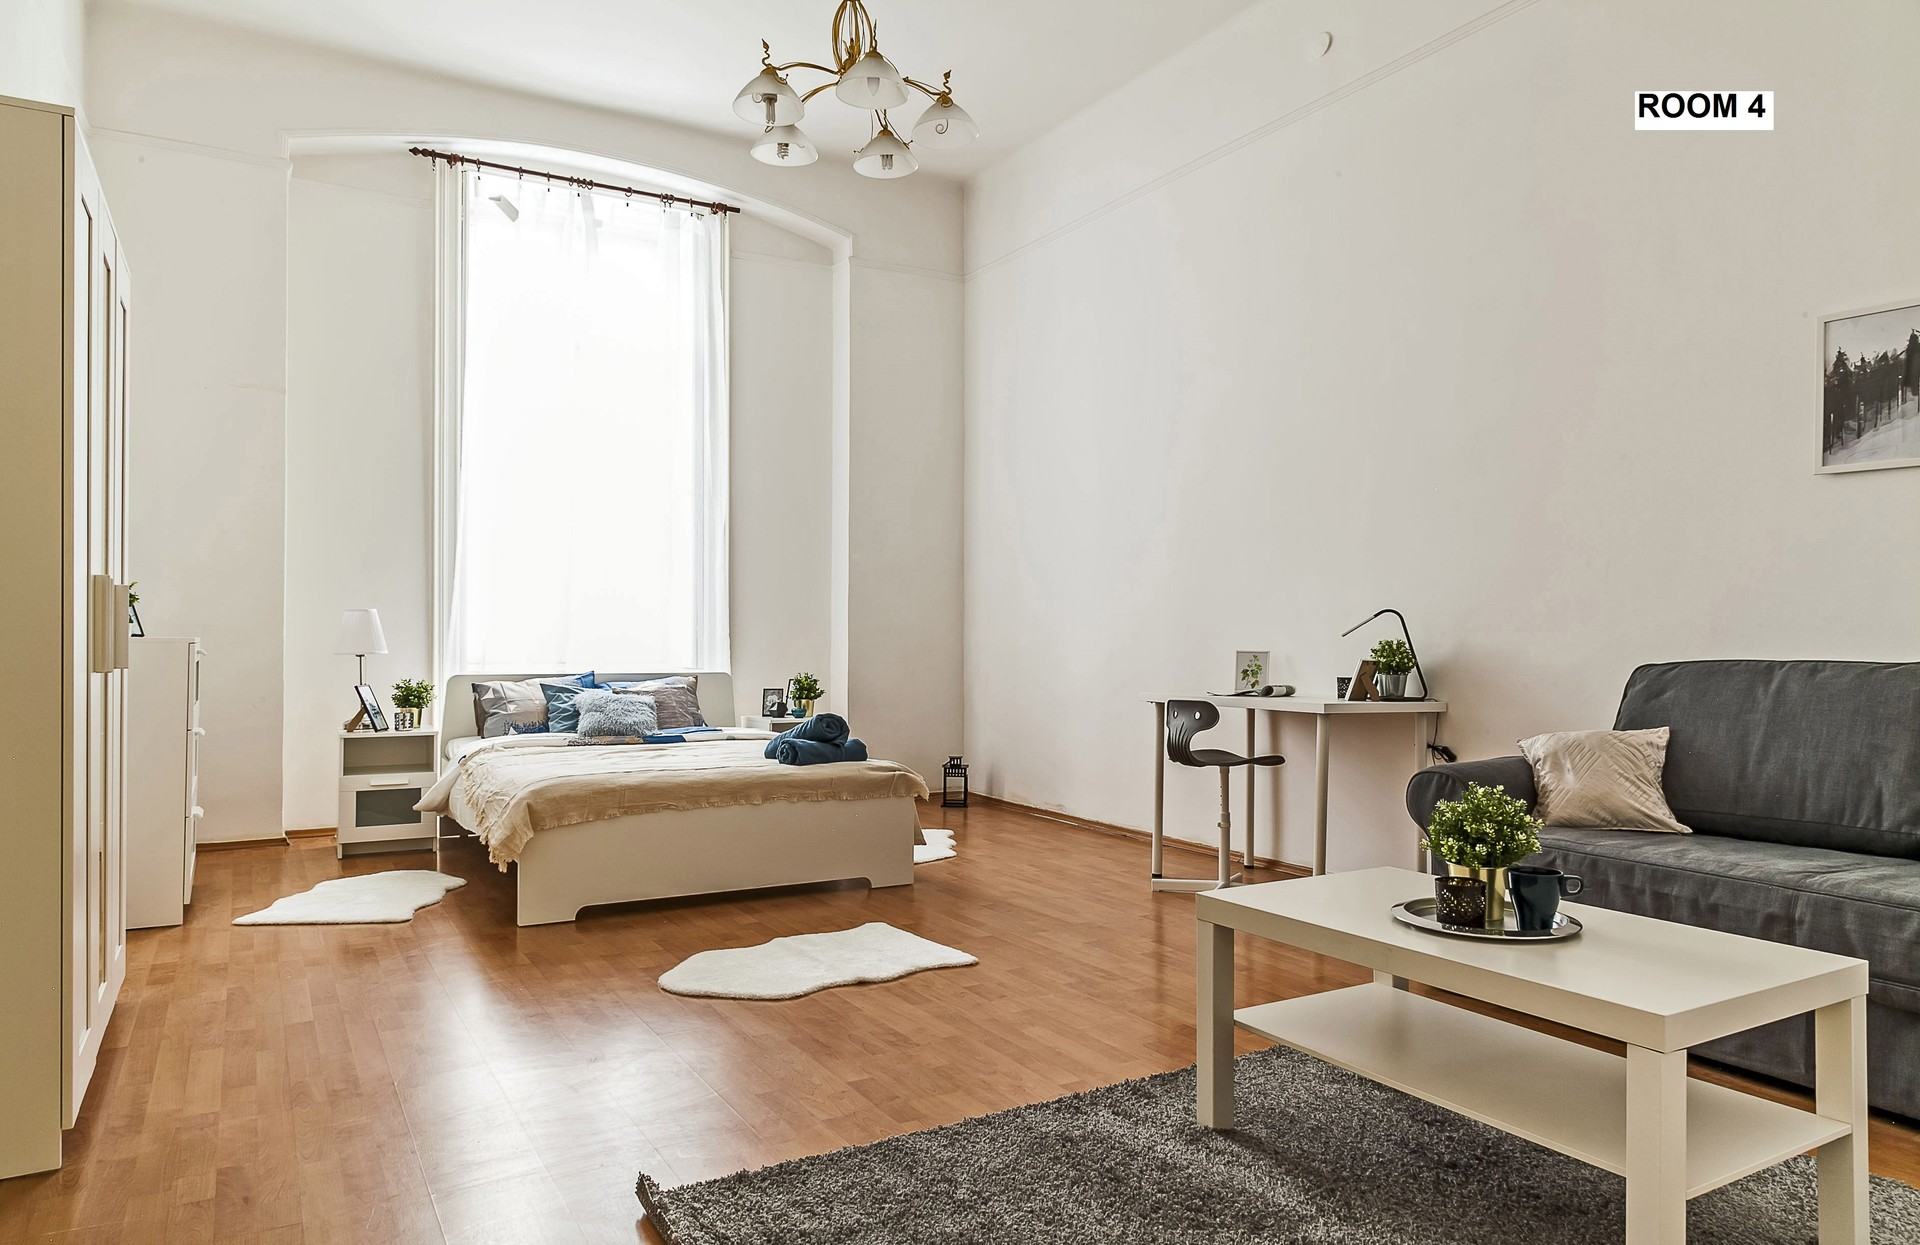 ALL INCLUSIVE 320 EUR ROOMS FOR SUMMER in the very heart of Buda